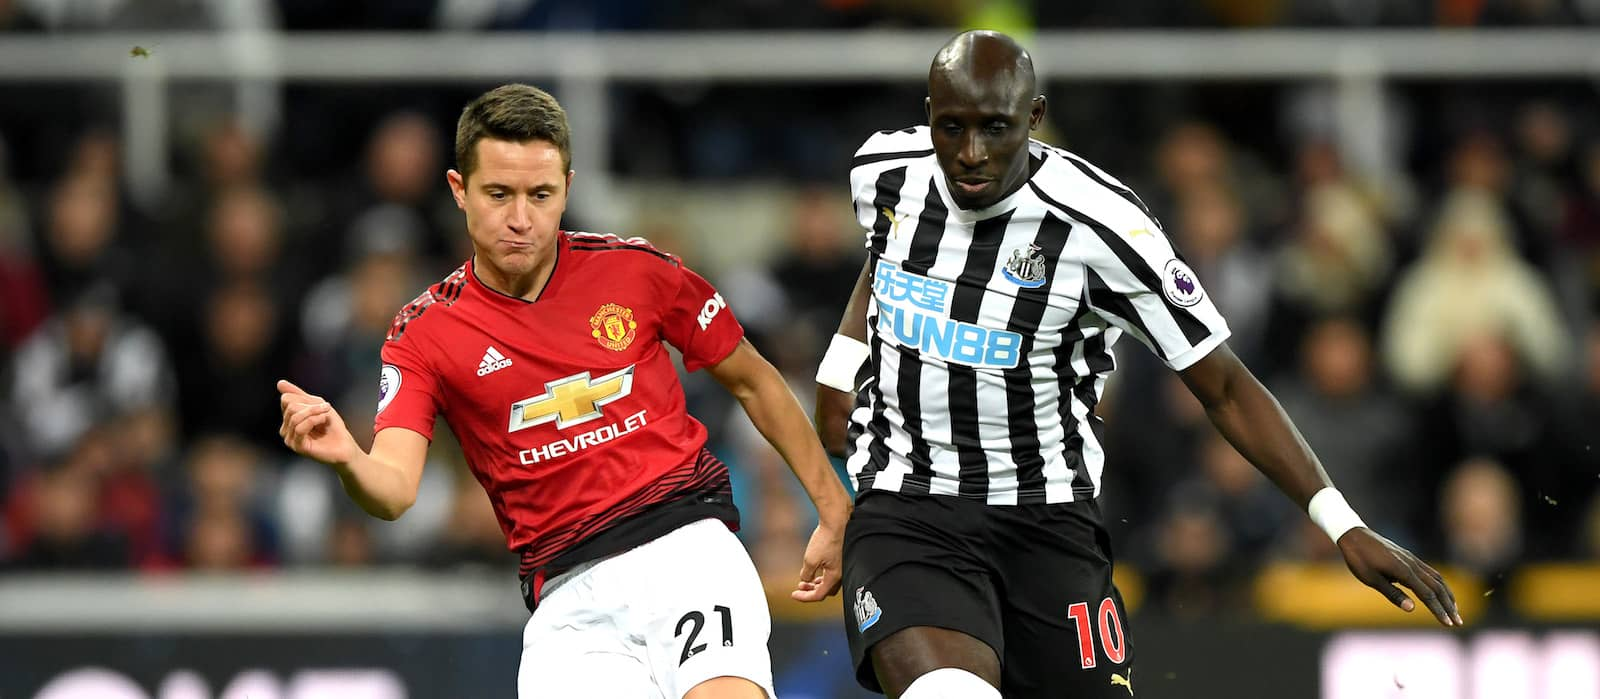 Ander Herrera: I'm not going to talk about my contract